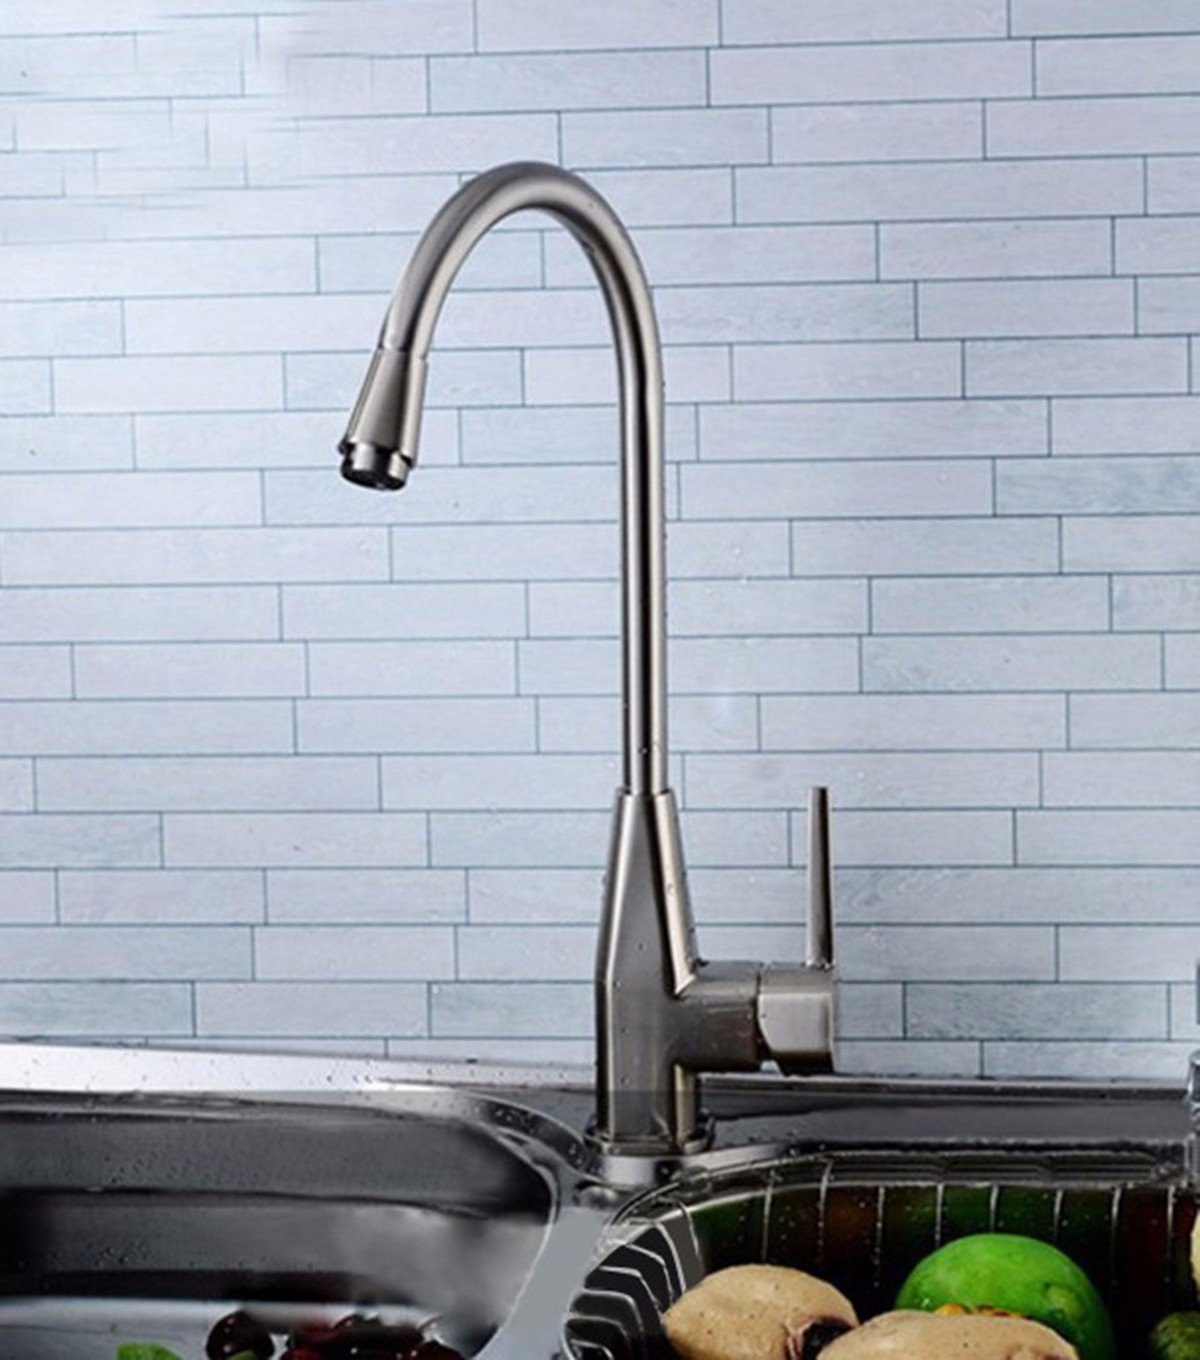 LaLF Basin Tap European Kitchen hot and Cold Water Faucet, Stainless Steel Mixer tap